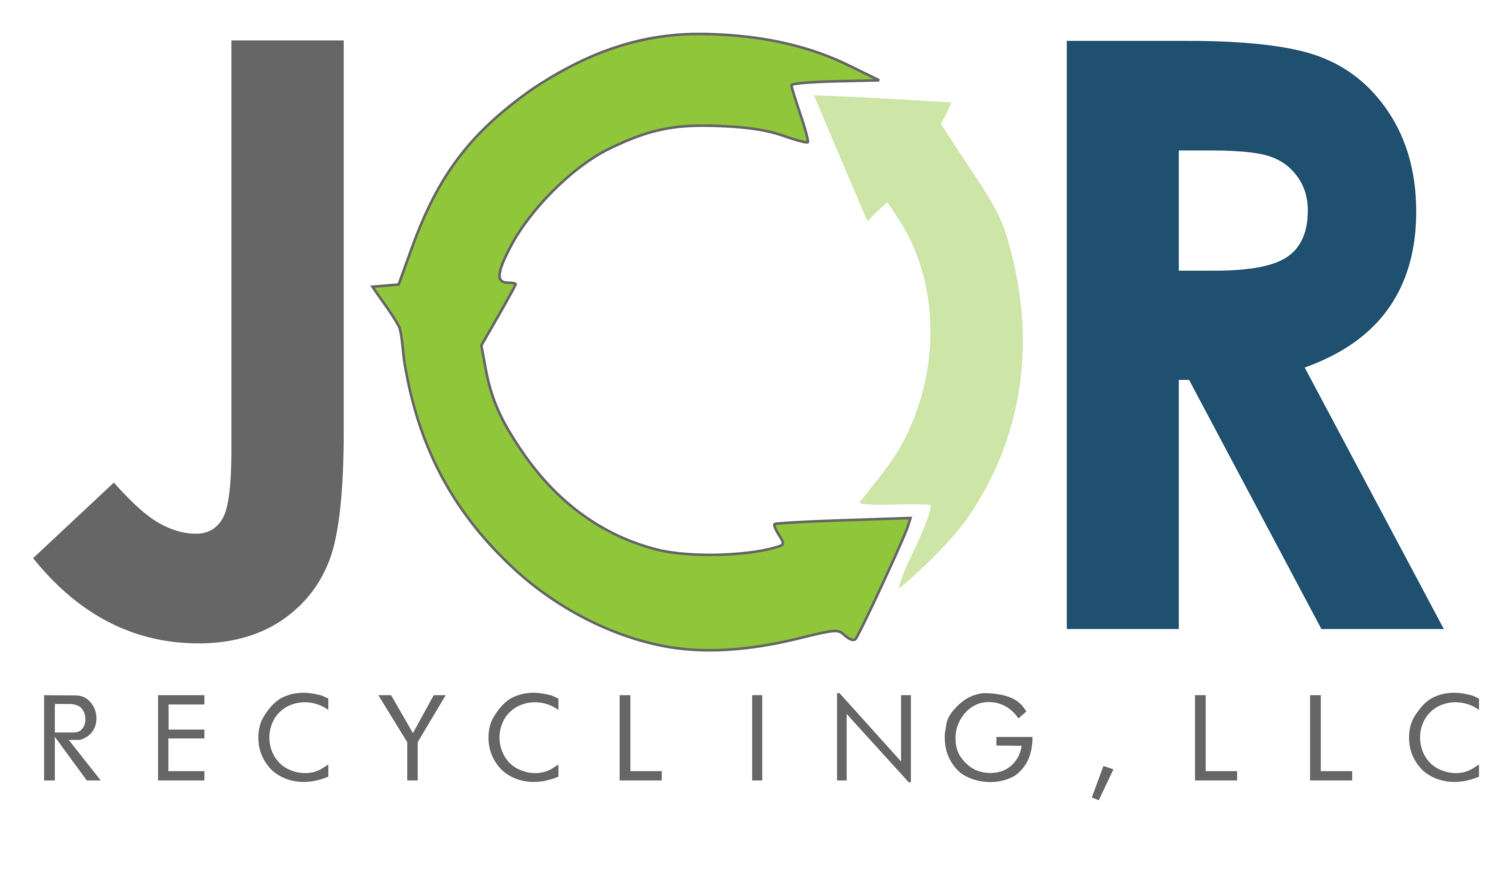 JCR RECYCLING, LLC